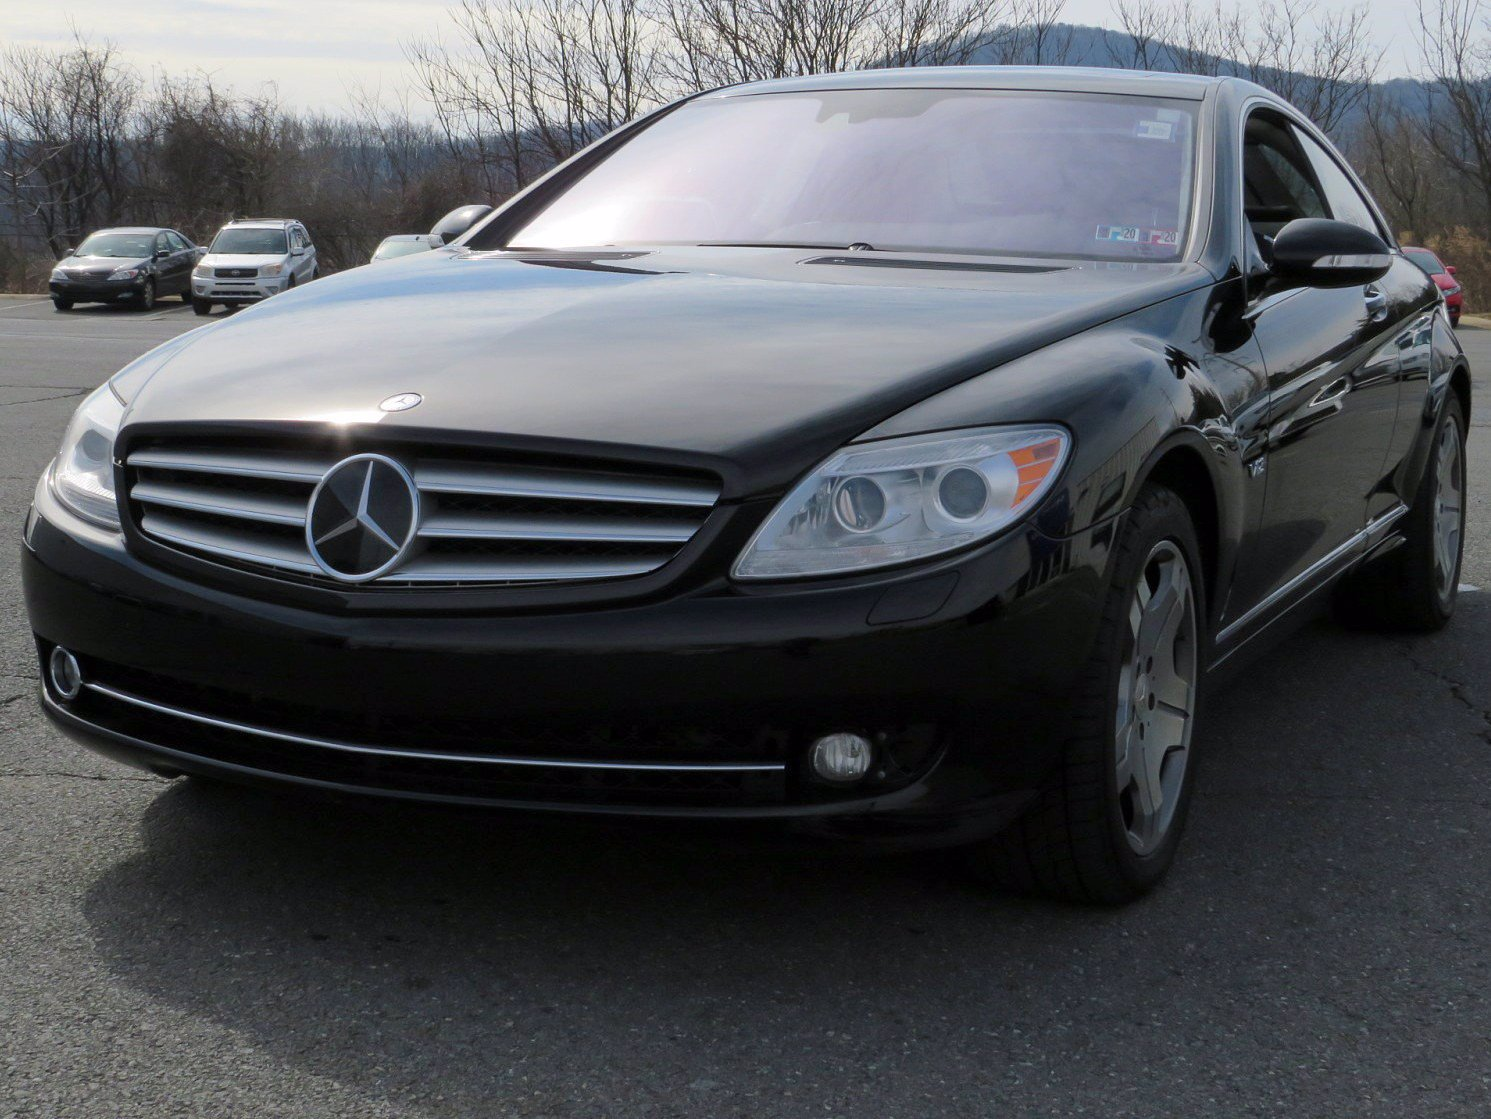 Pre-Owned 2008 Mercedes-Benz CL-Class V12